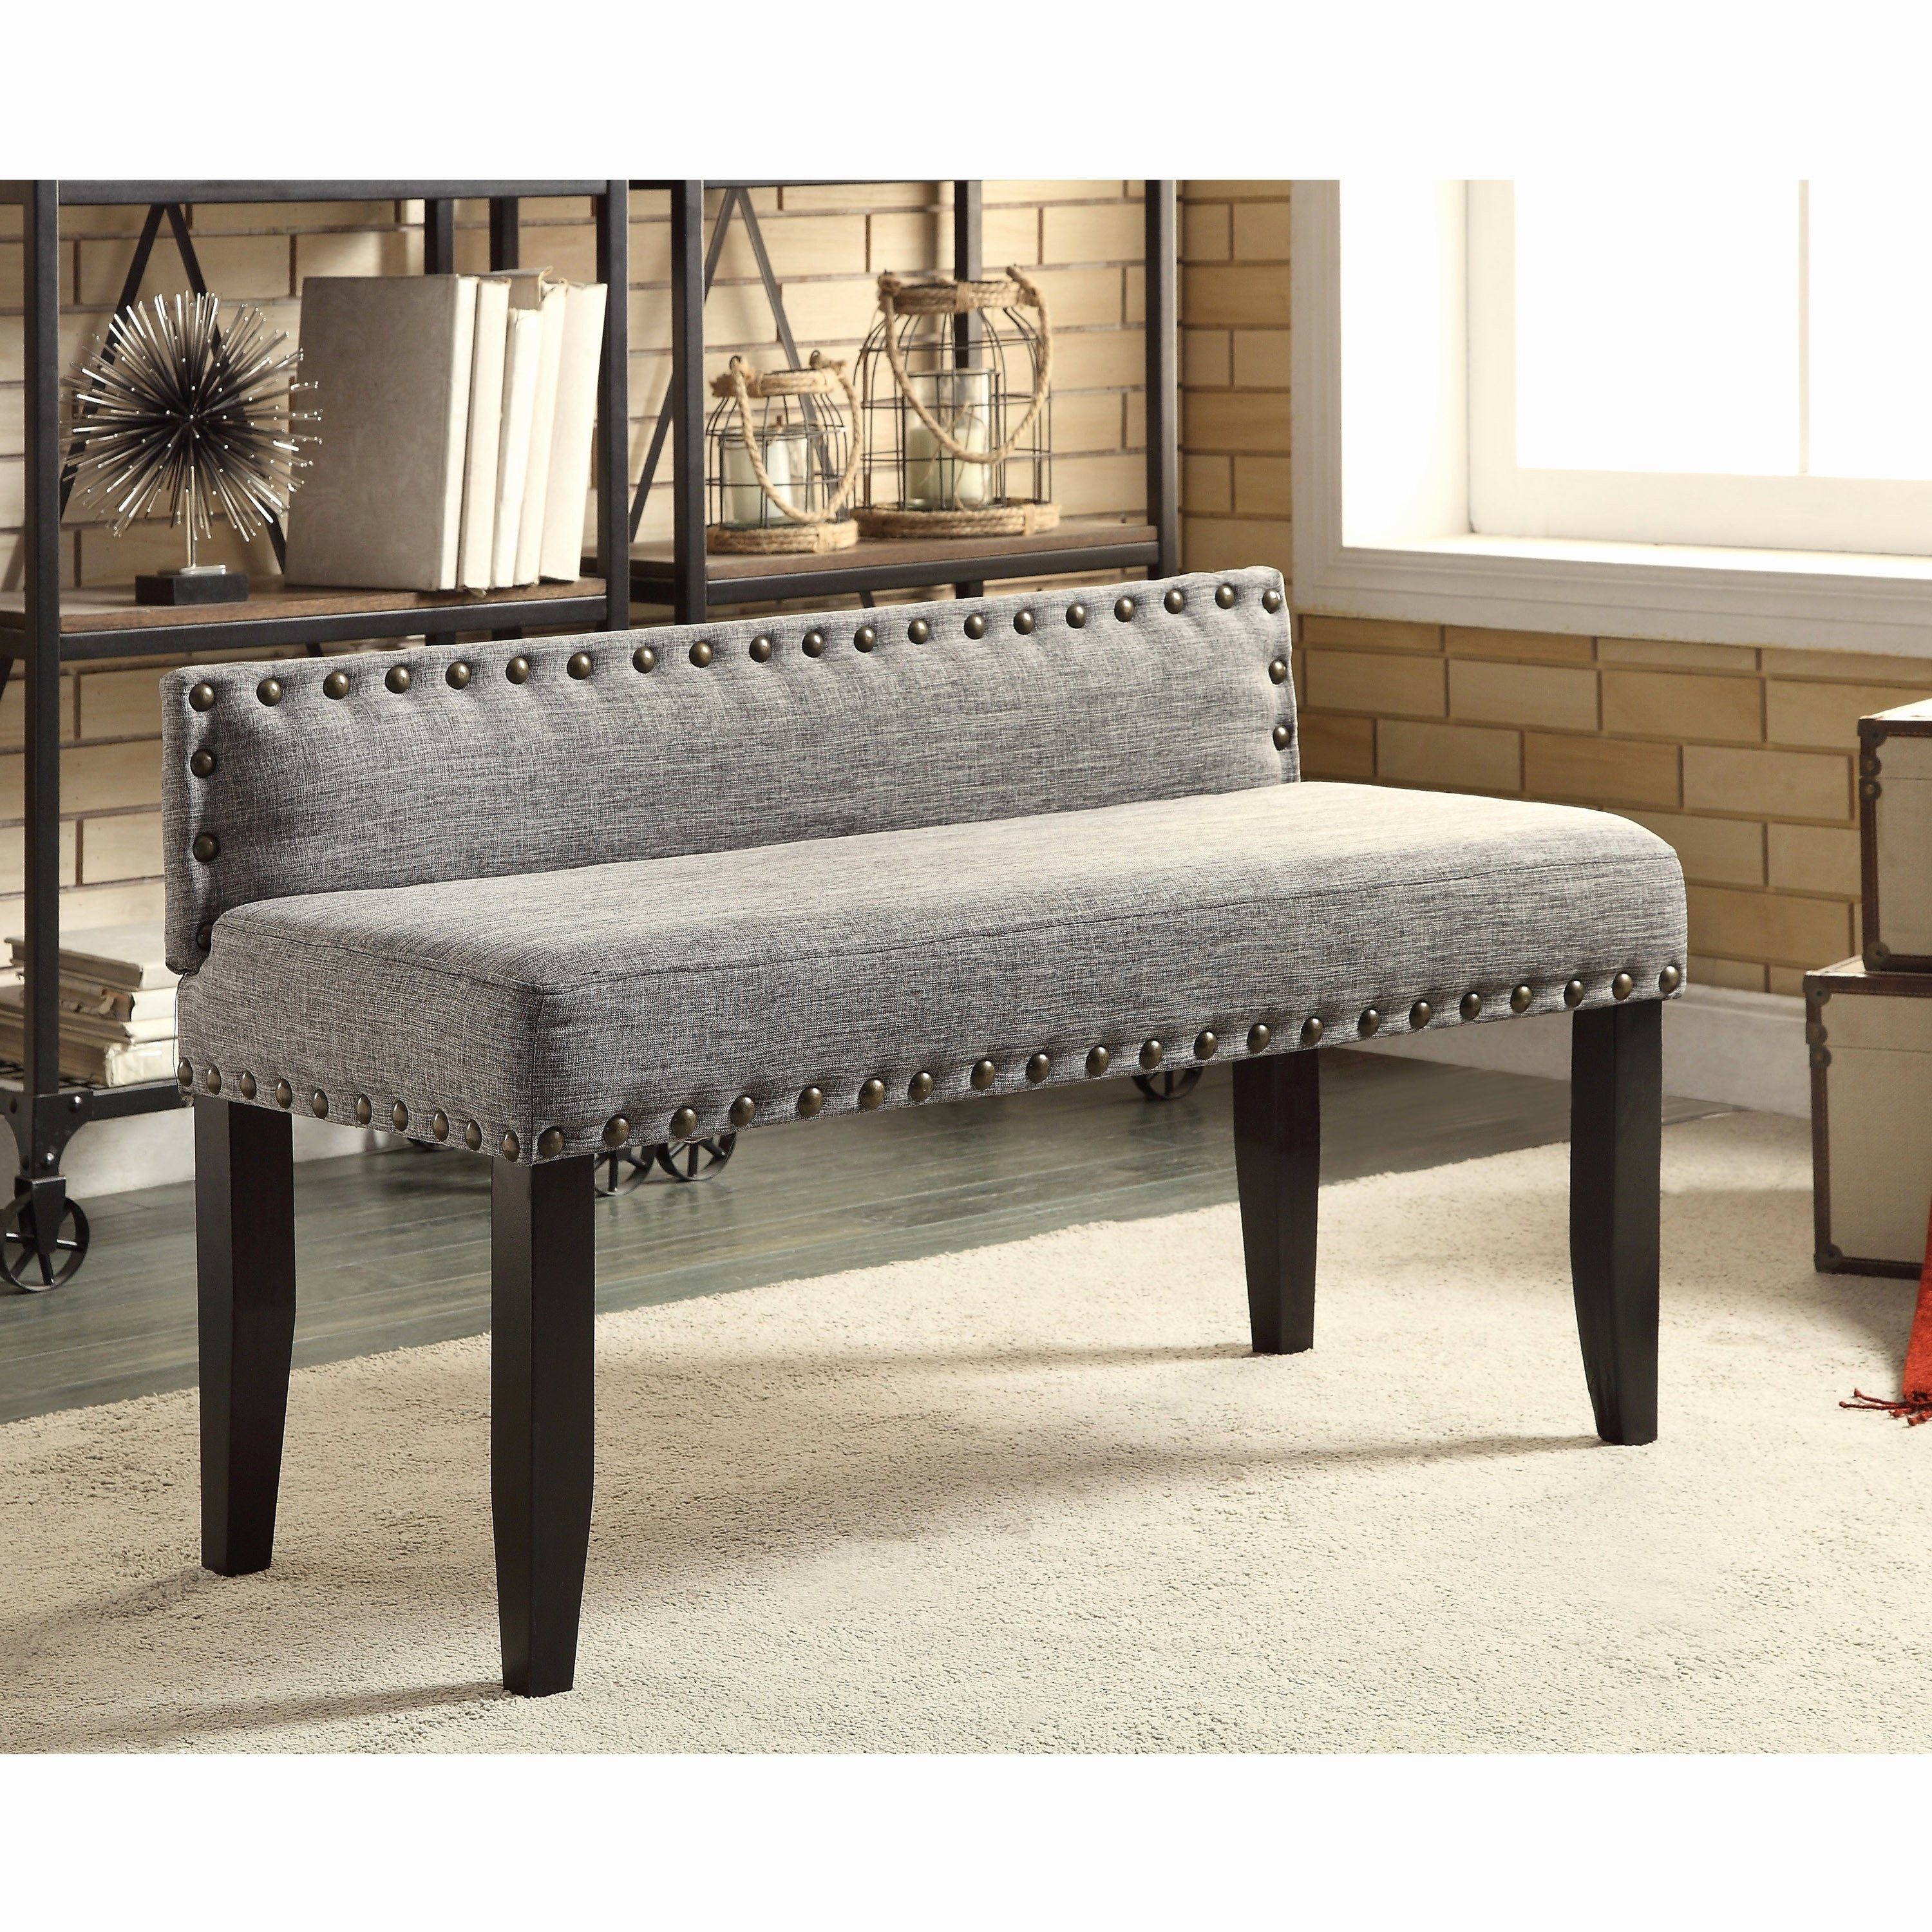 Fashionable Upholstered Dining Table Bench With Back Fresh Probably Fantastic With Regard To Bench With Back For Dining Tables (View 4 of 25)